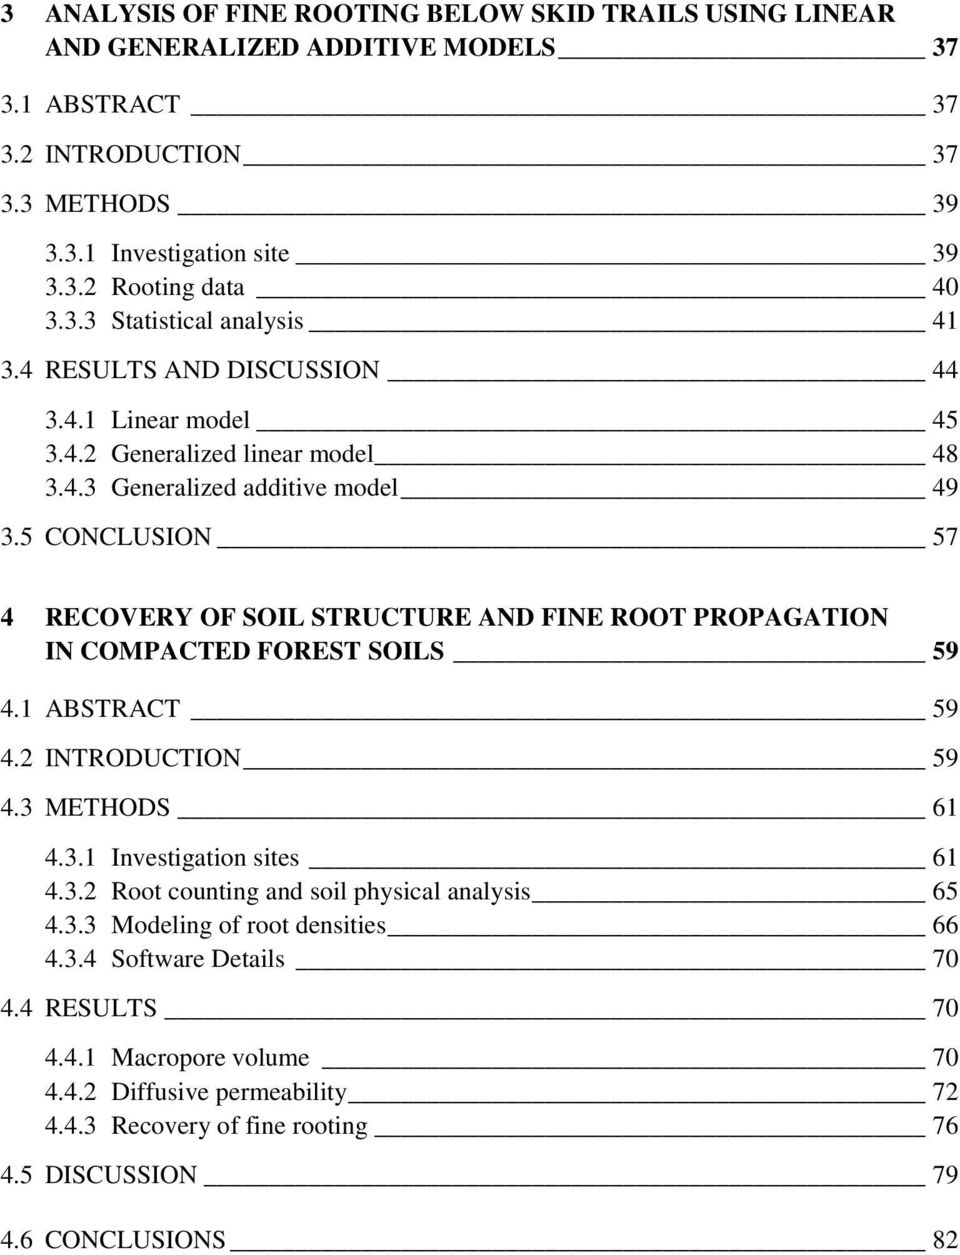 5 CONCLUSION 57 4 RECOVERY OF SOIL STRUCTURE AND FINE ROOT PROPAGATION IN COMPACTED FOREST SOILS 59 4.1 ABSTRACT 59 4.2 INTRODUCTION 59 4.3 METHODS 61 4.3.1 Investigation sites 61 4.3.2 Root counting and soil physical analysis 65 4.